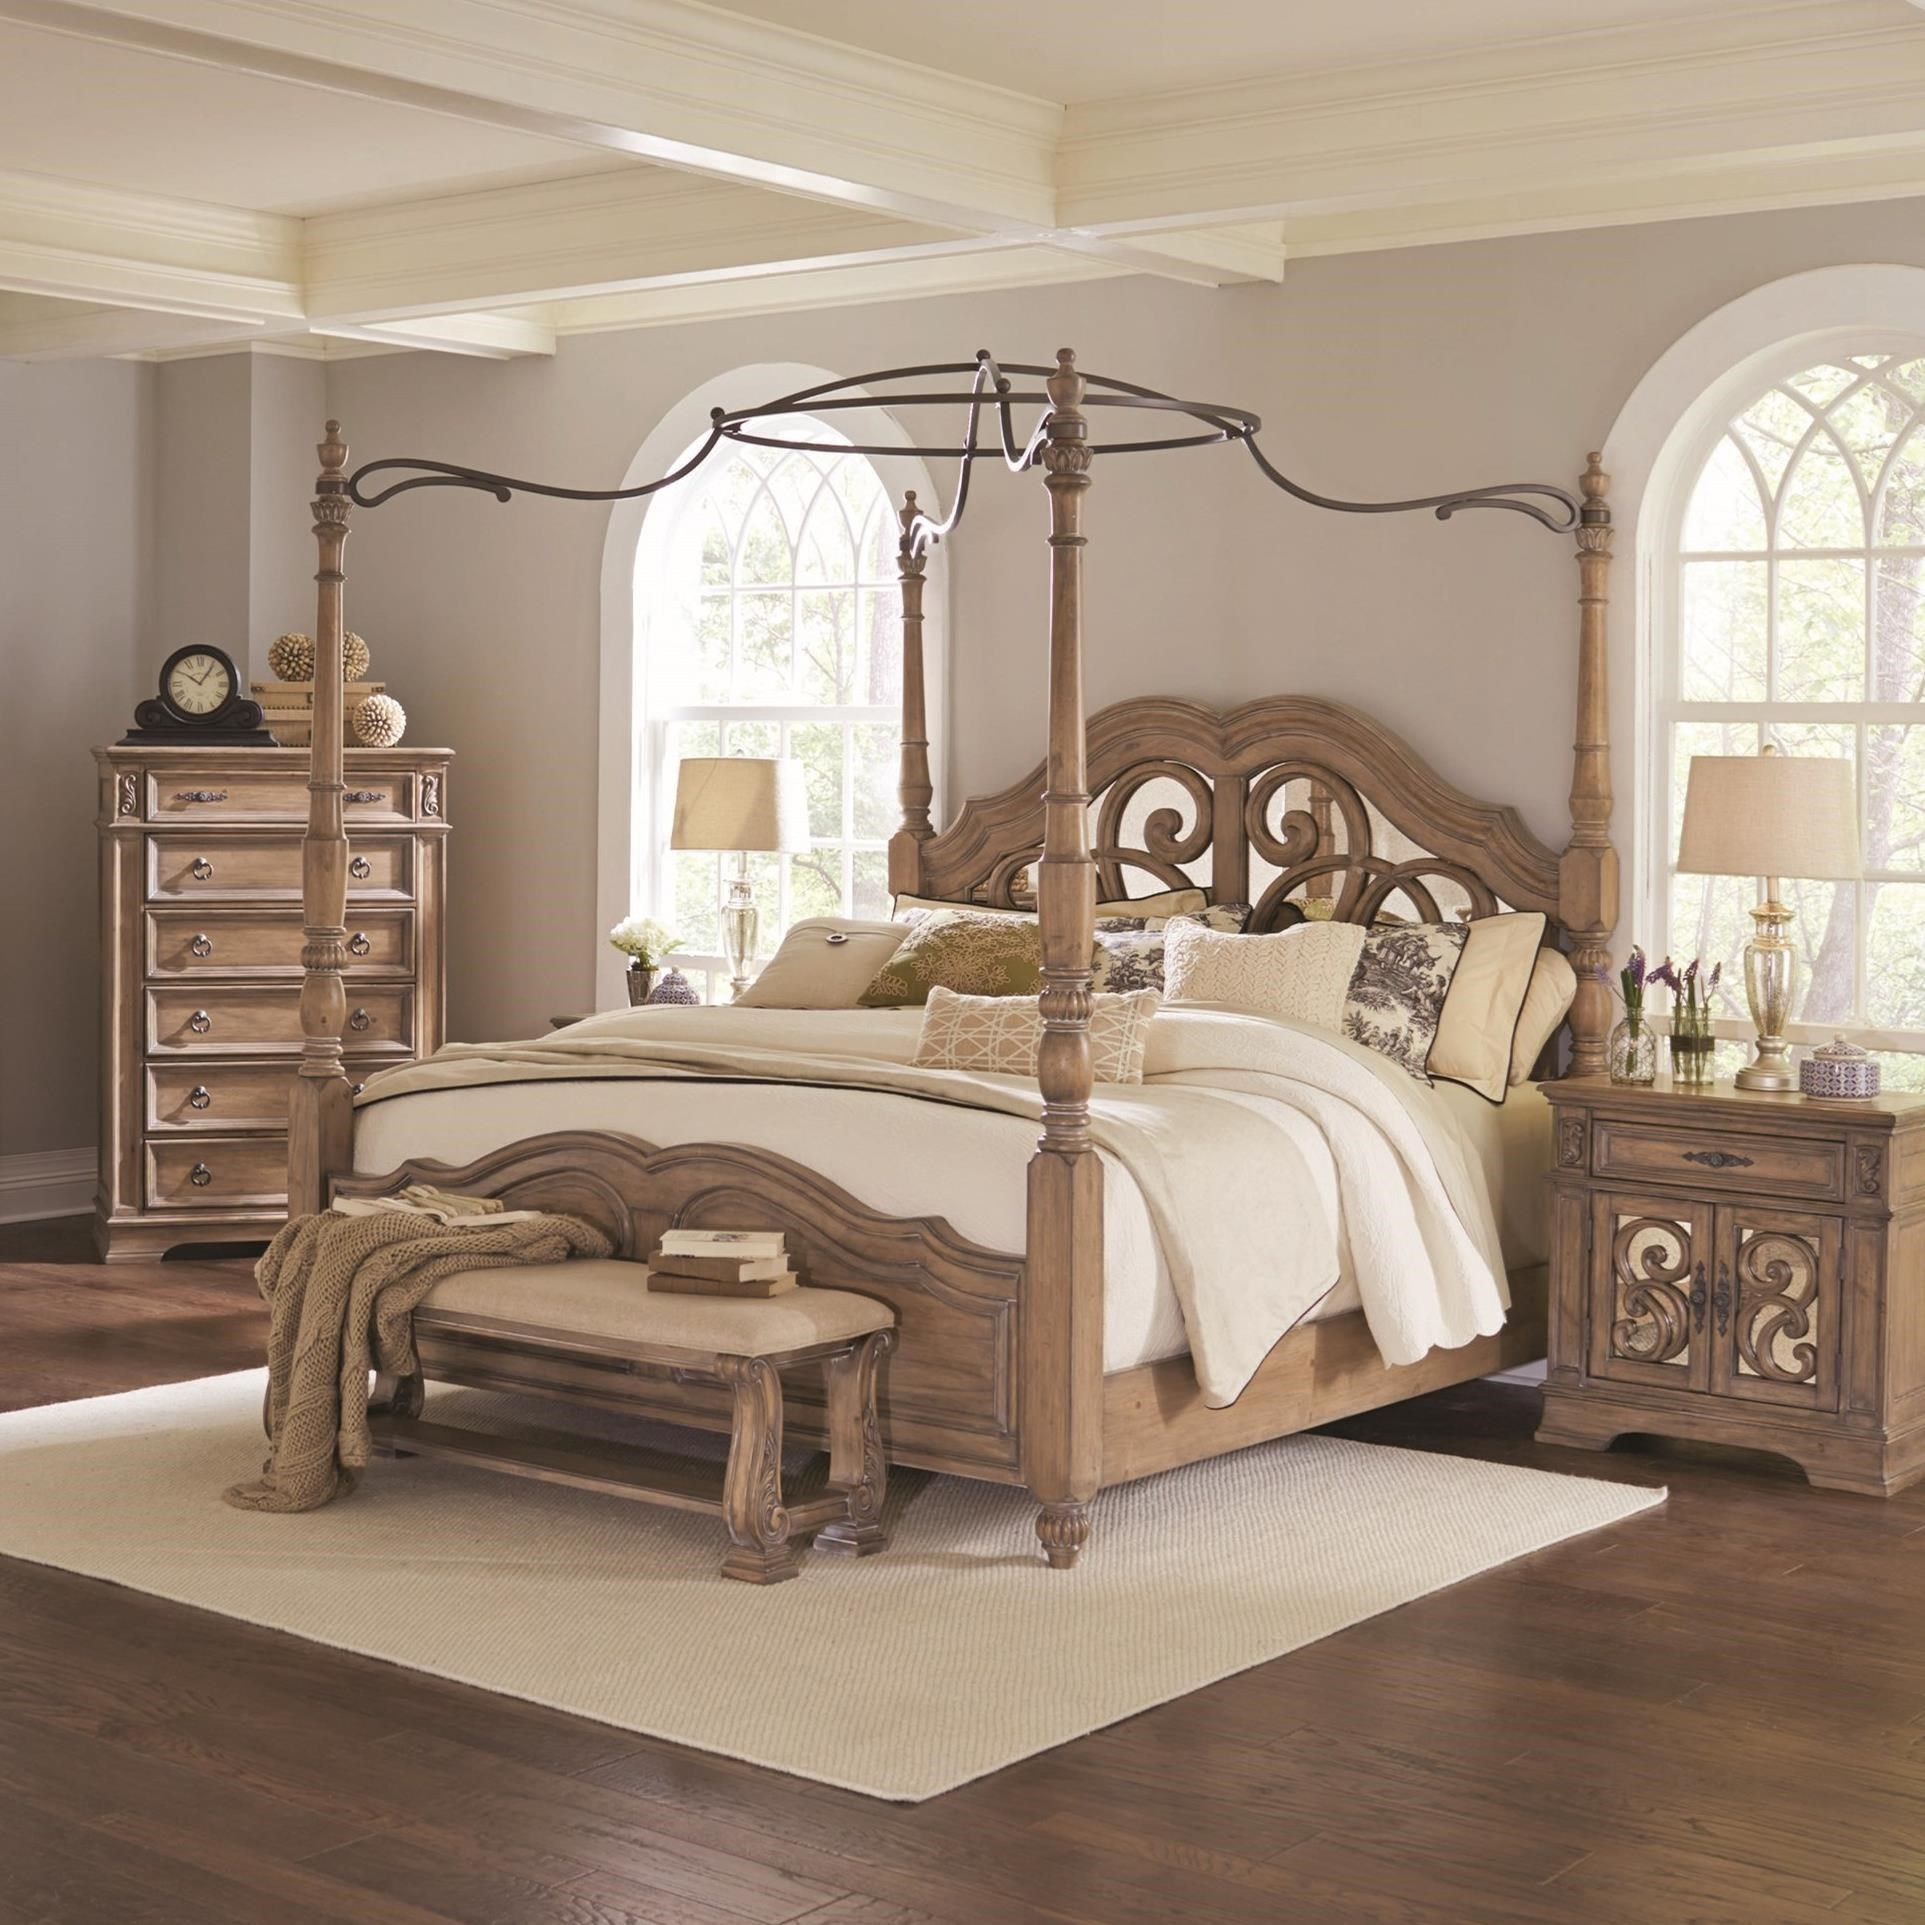 coaster ilana king canopy bed with mirror back headboard value city furniture canopy beds. Black Bedroom Furniture Sets. Home Design Ideas